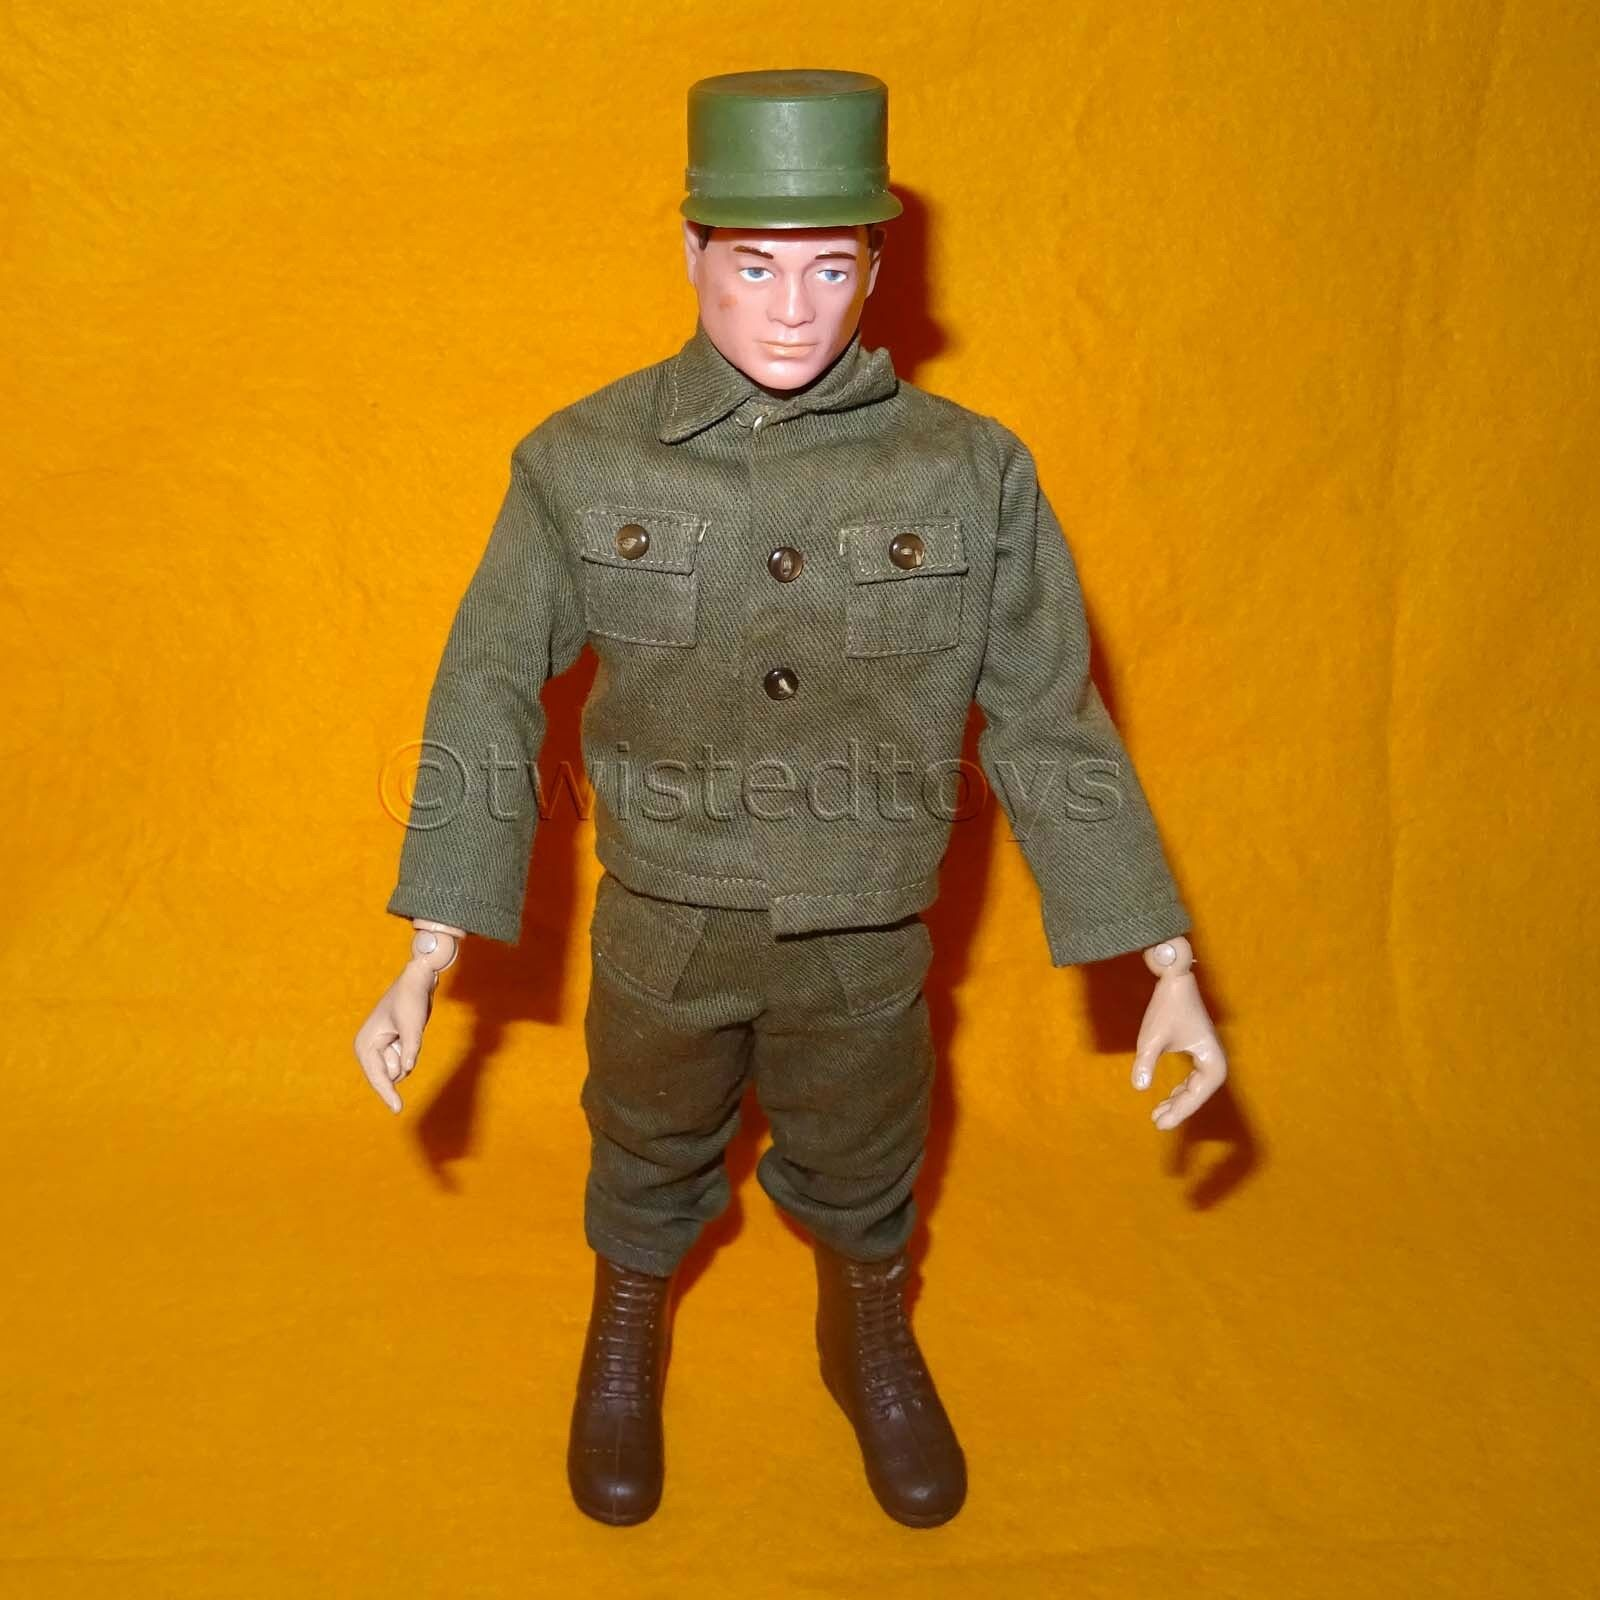 VINTAGE 1964s 60s HASBRO G.I. GI JOE ACTION MAN SOLDIER PAINTED HAIR DOLL FIGURE